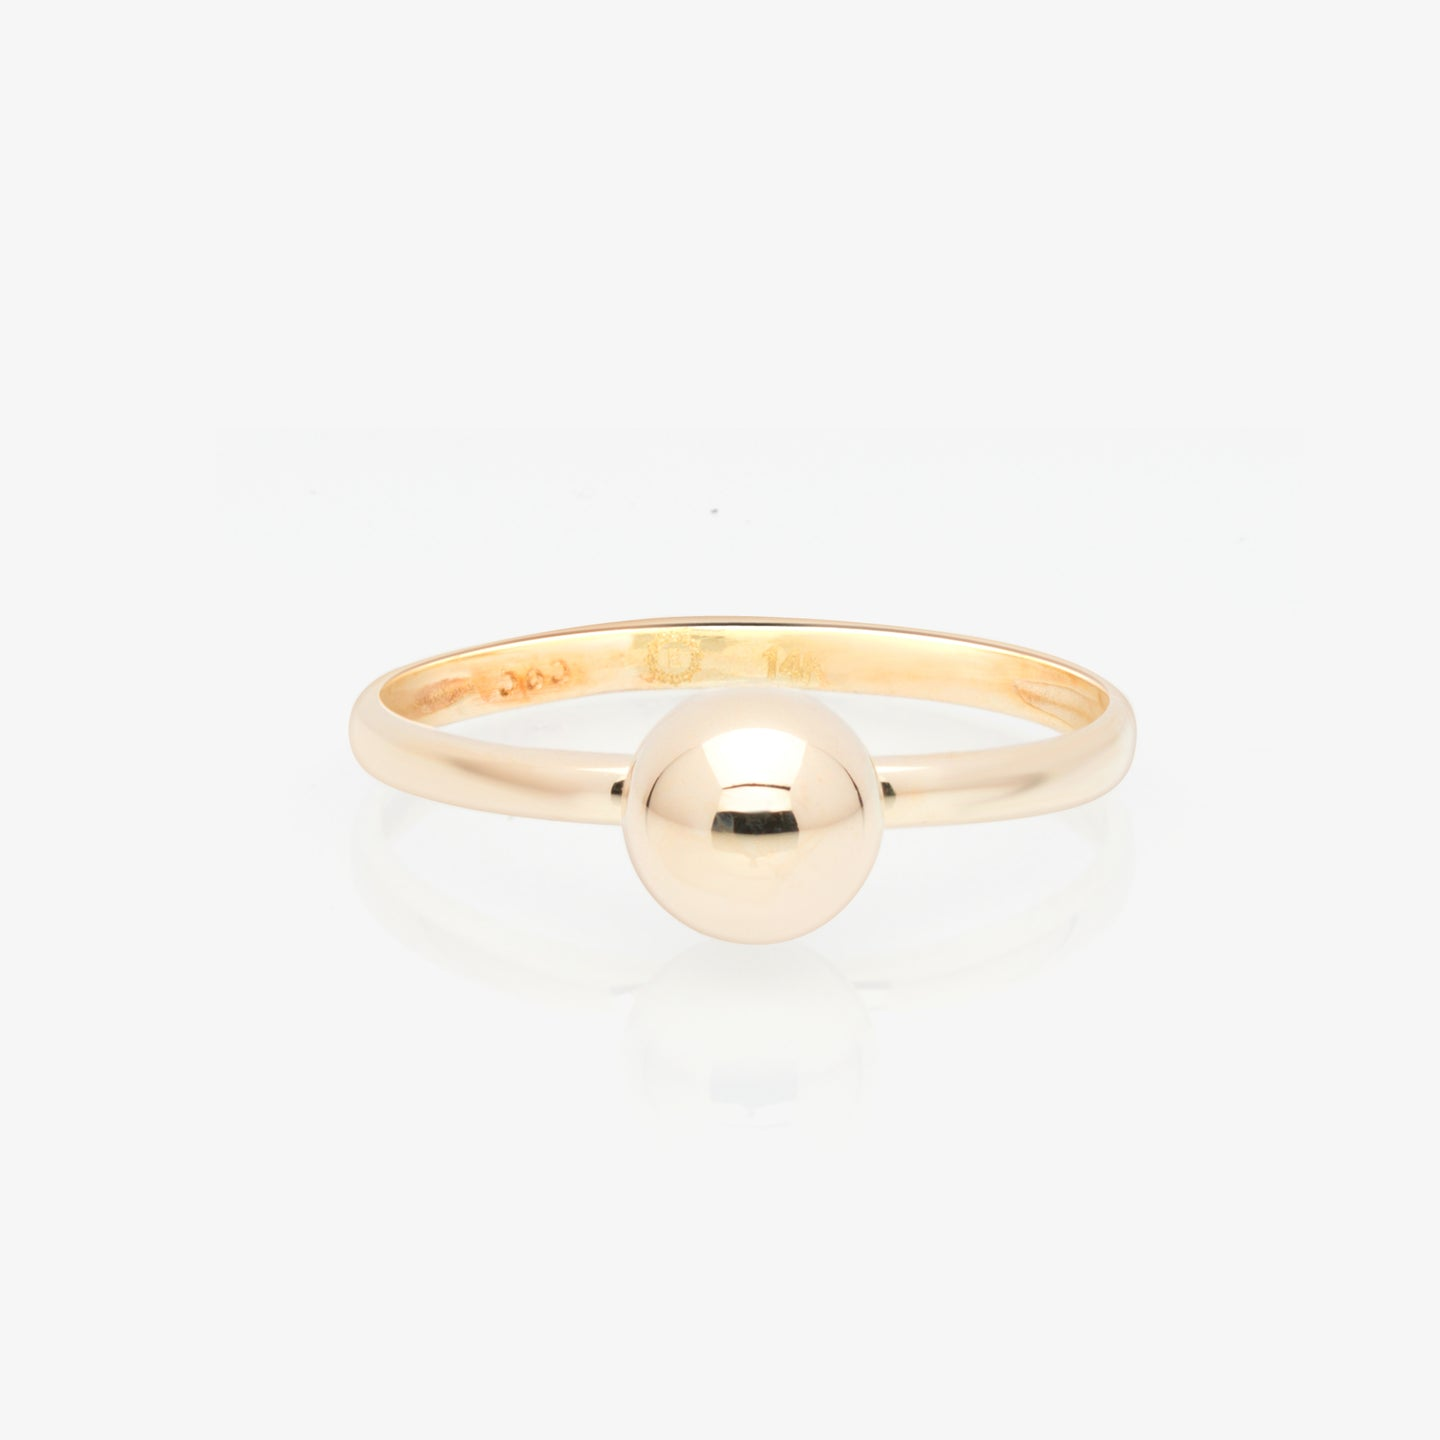 Sphere Solid Gold Solitaire Ring - estellacollection